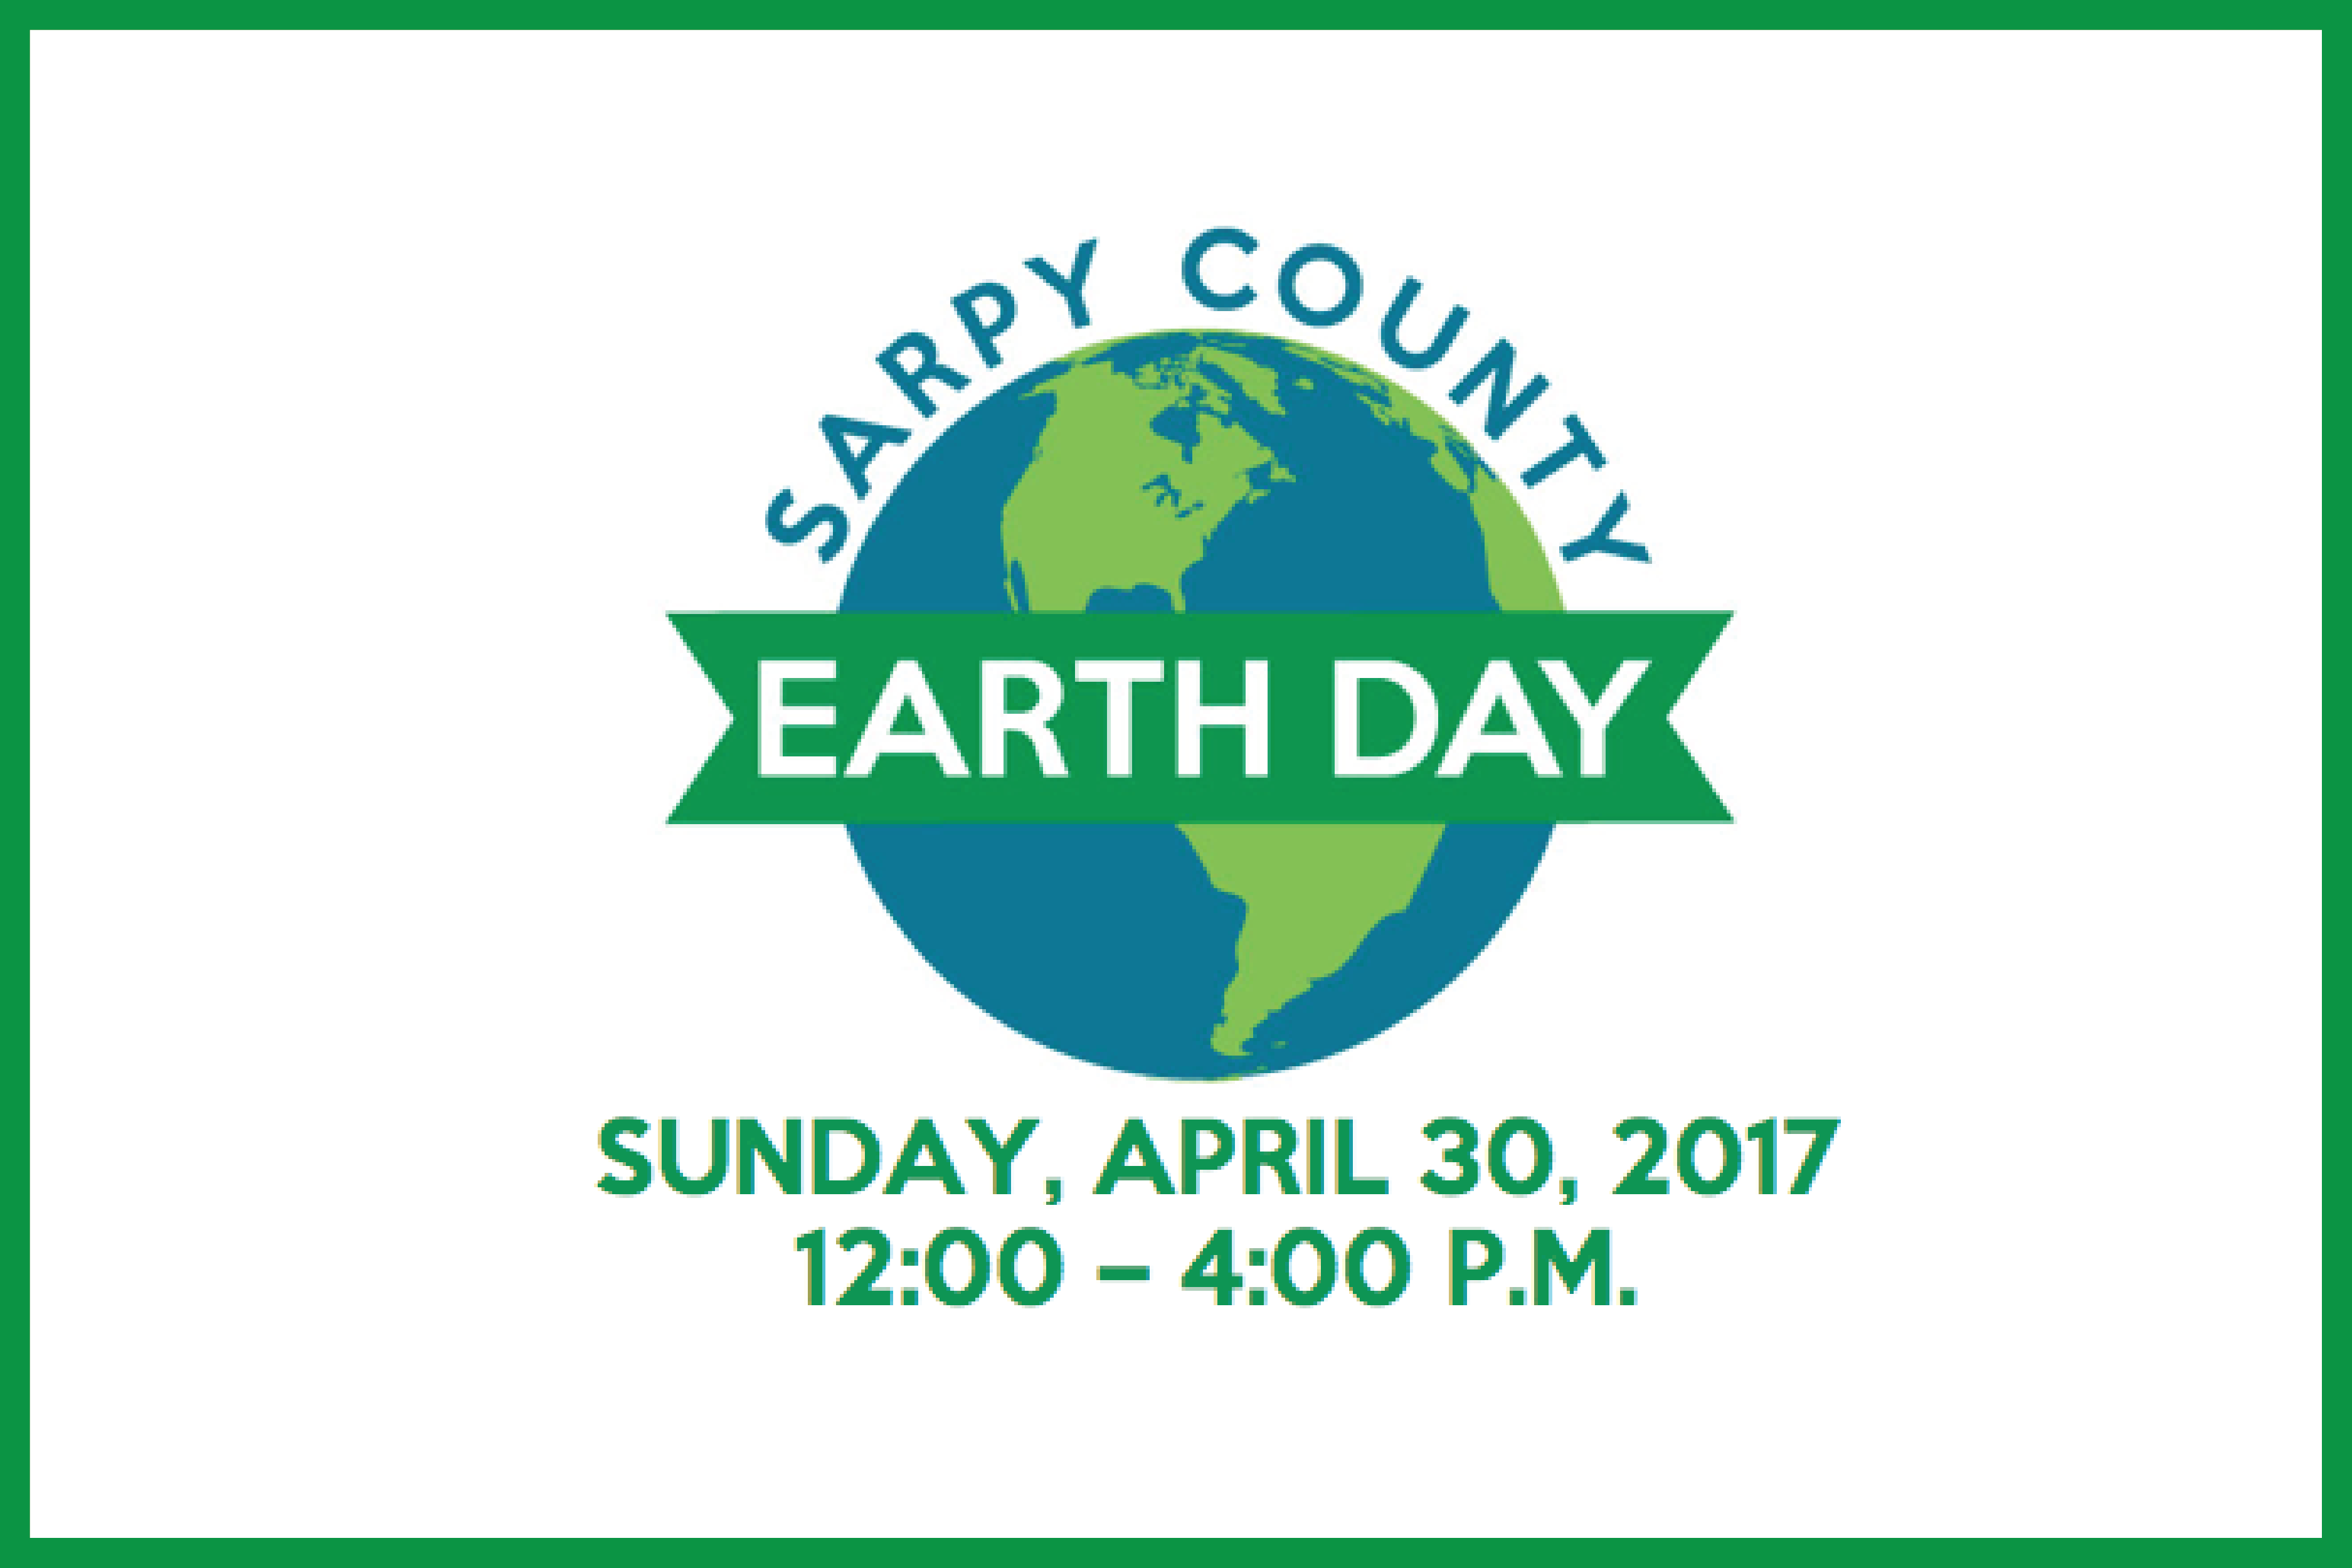 The Sarpy County Earth Day Celebration & Expo will be held at the Lied Activity Center on April 30.